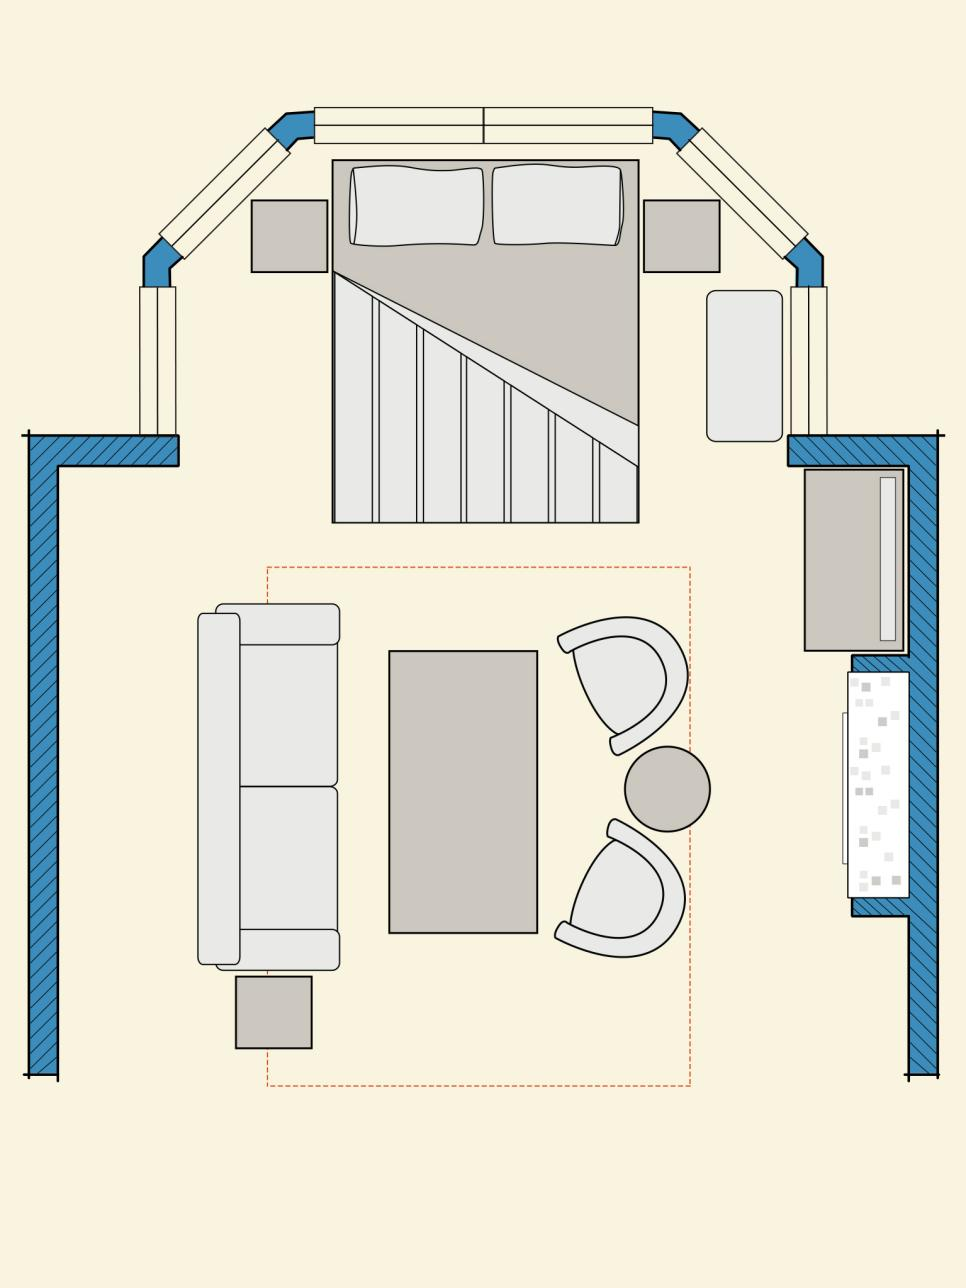 Bedroom floor plans hgtv for 4 bedroom layout design